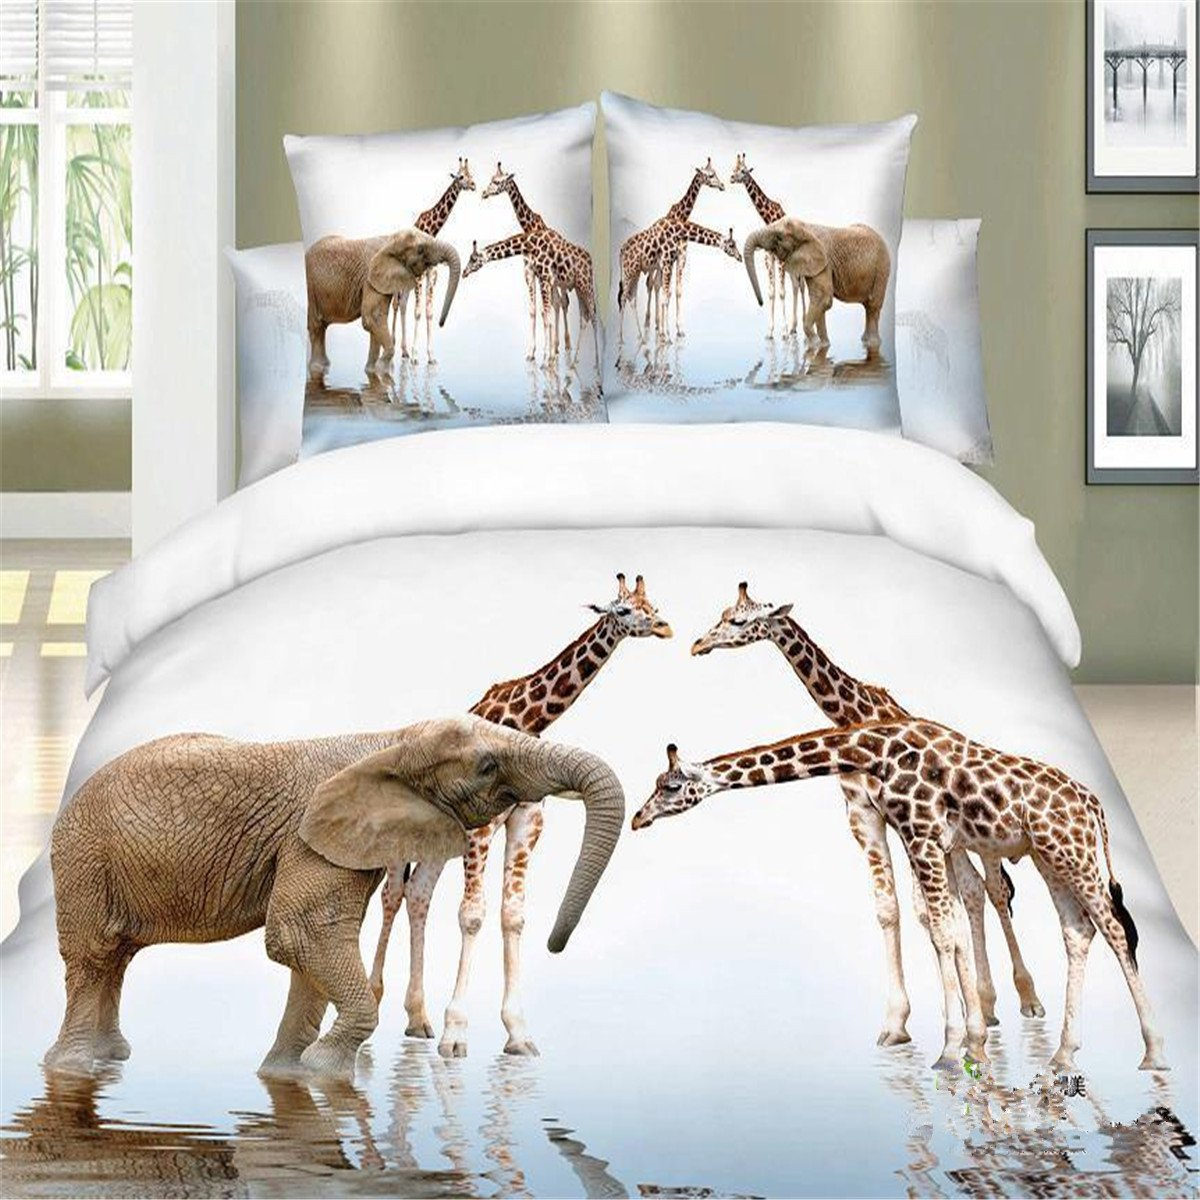 Zebratown 3d Printed Wolfs Animals 100%cotton Bedding Sets 4pcs Duvet Quilt Bed Linen Covers for Queen Bedclothes Comforters Bedsheet (Giraffes and elephants) by Zebratown (Image #1)